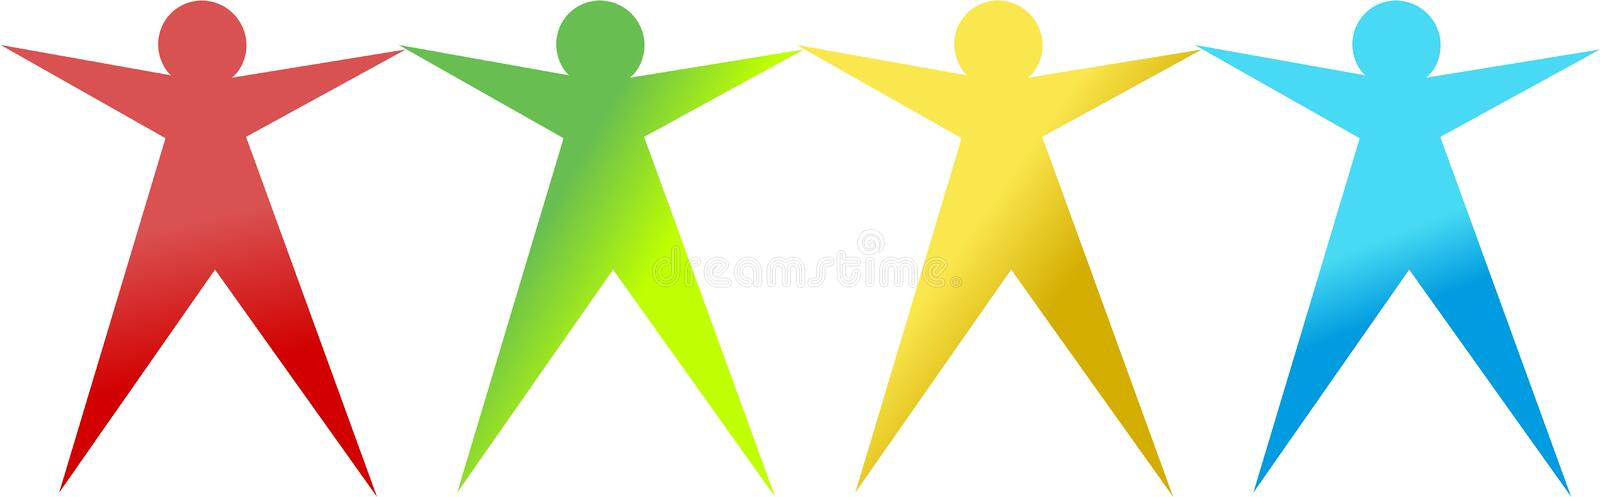 Download Team icon stock illustration. Image of community, connection - 10048870